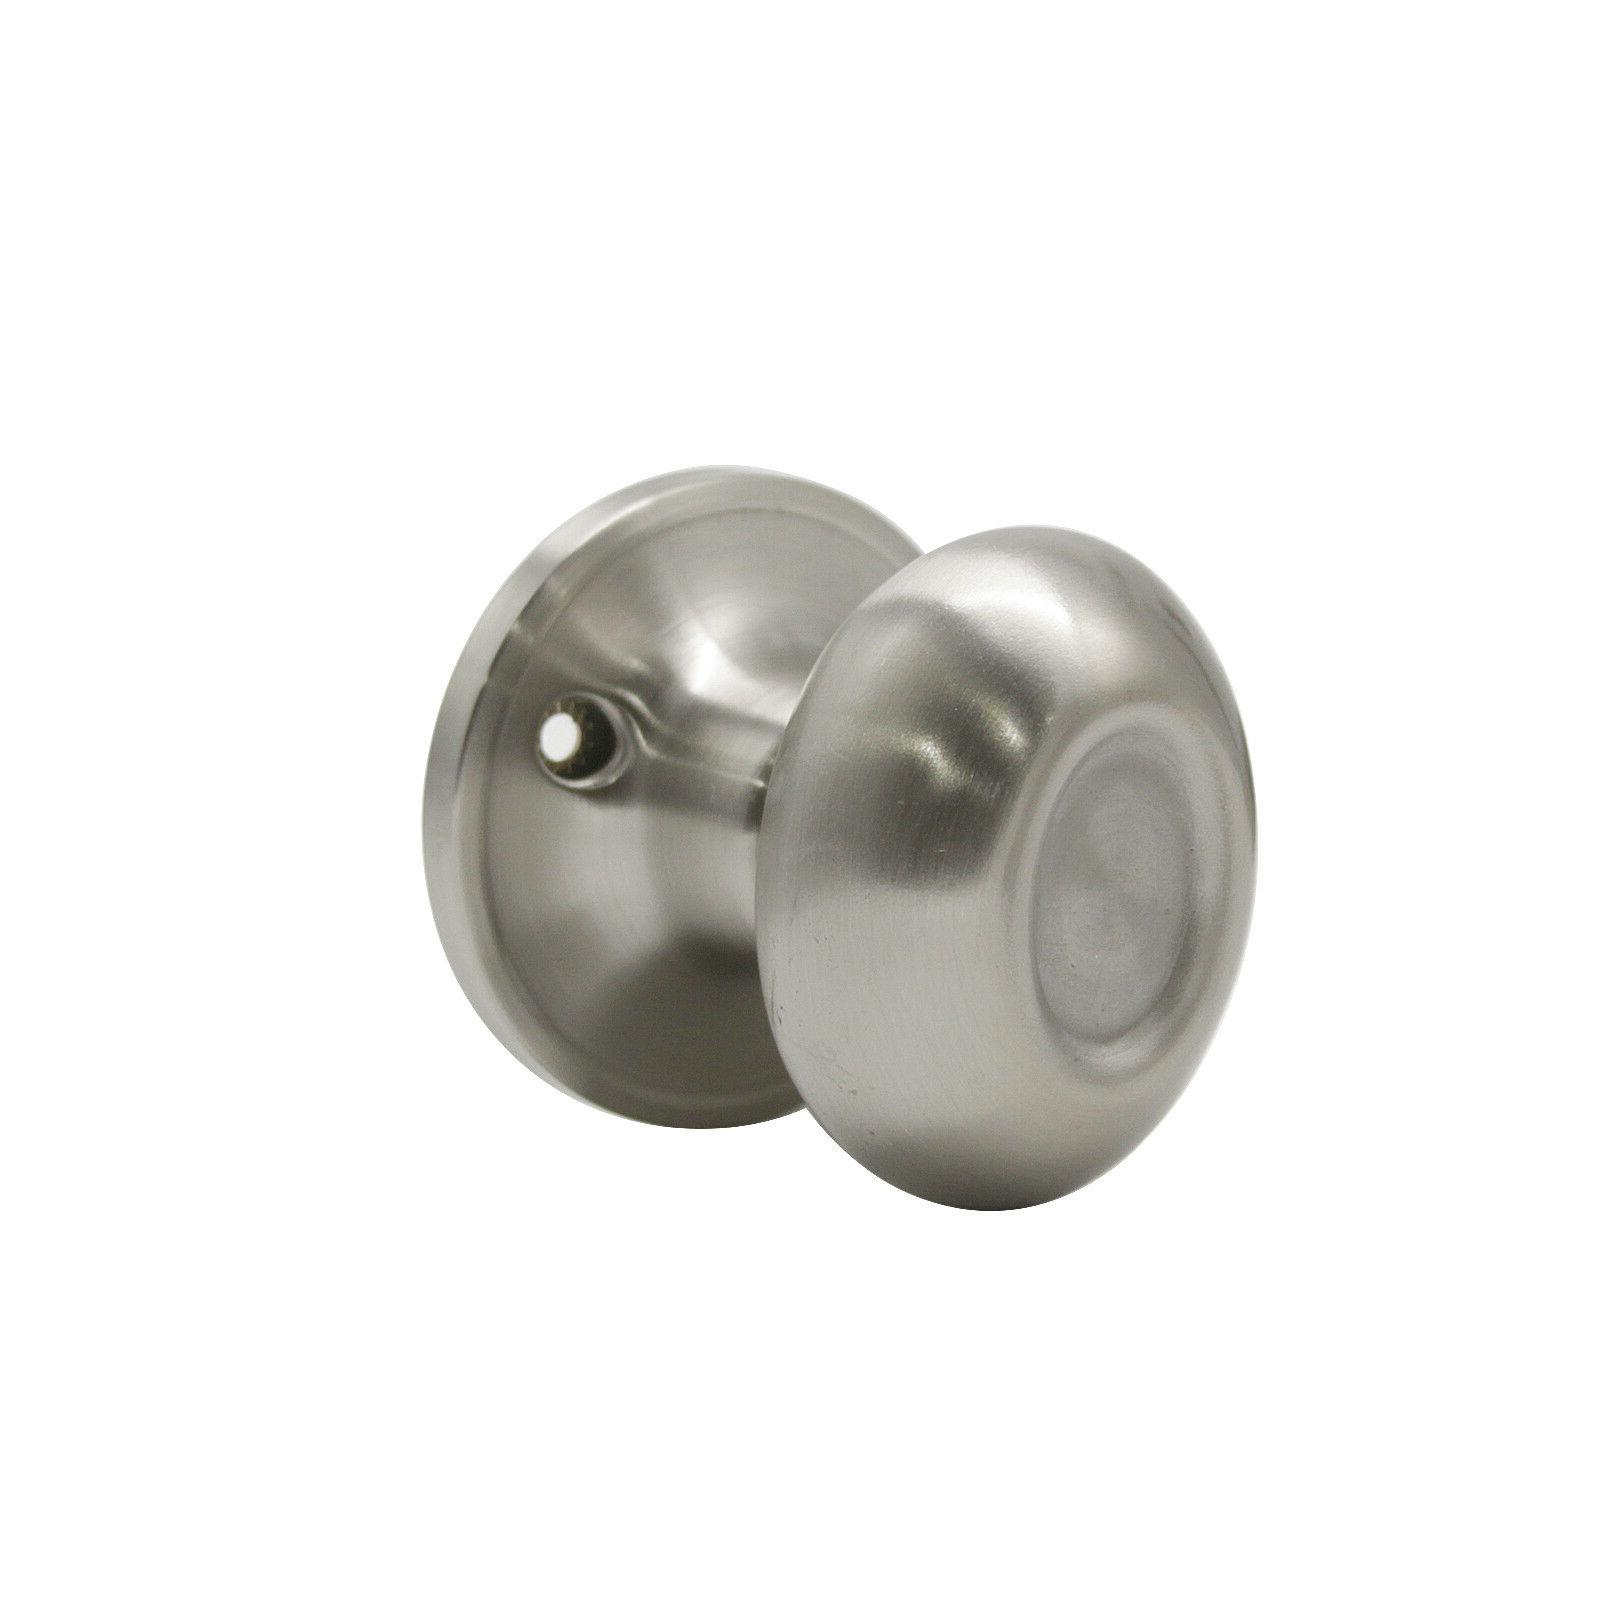 Satin Nickel Knob Oval Door Interior Knobs